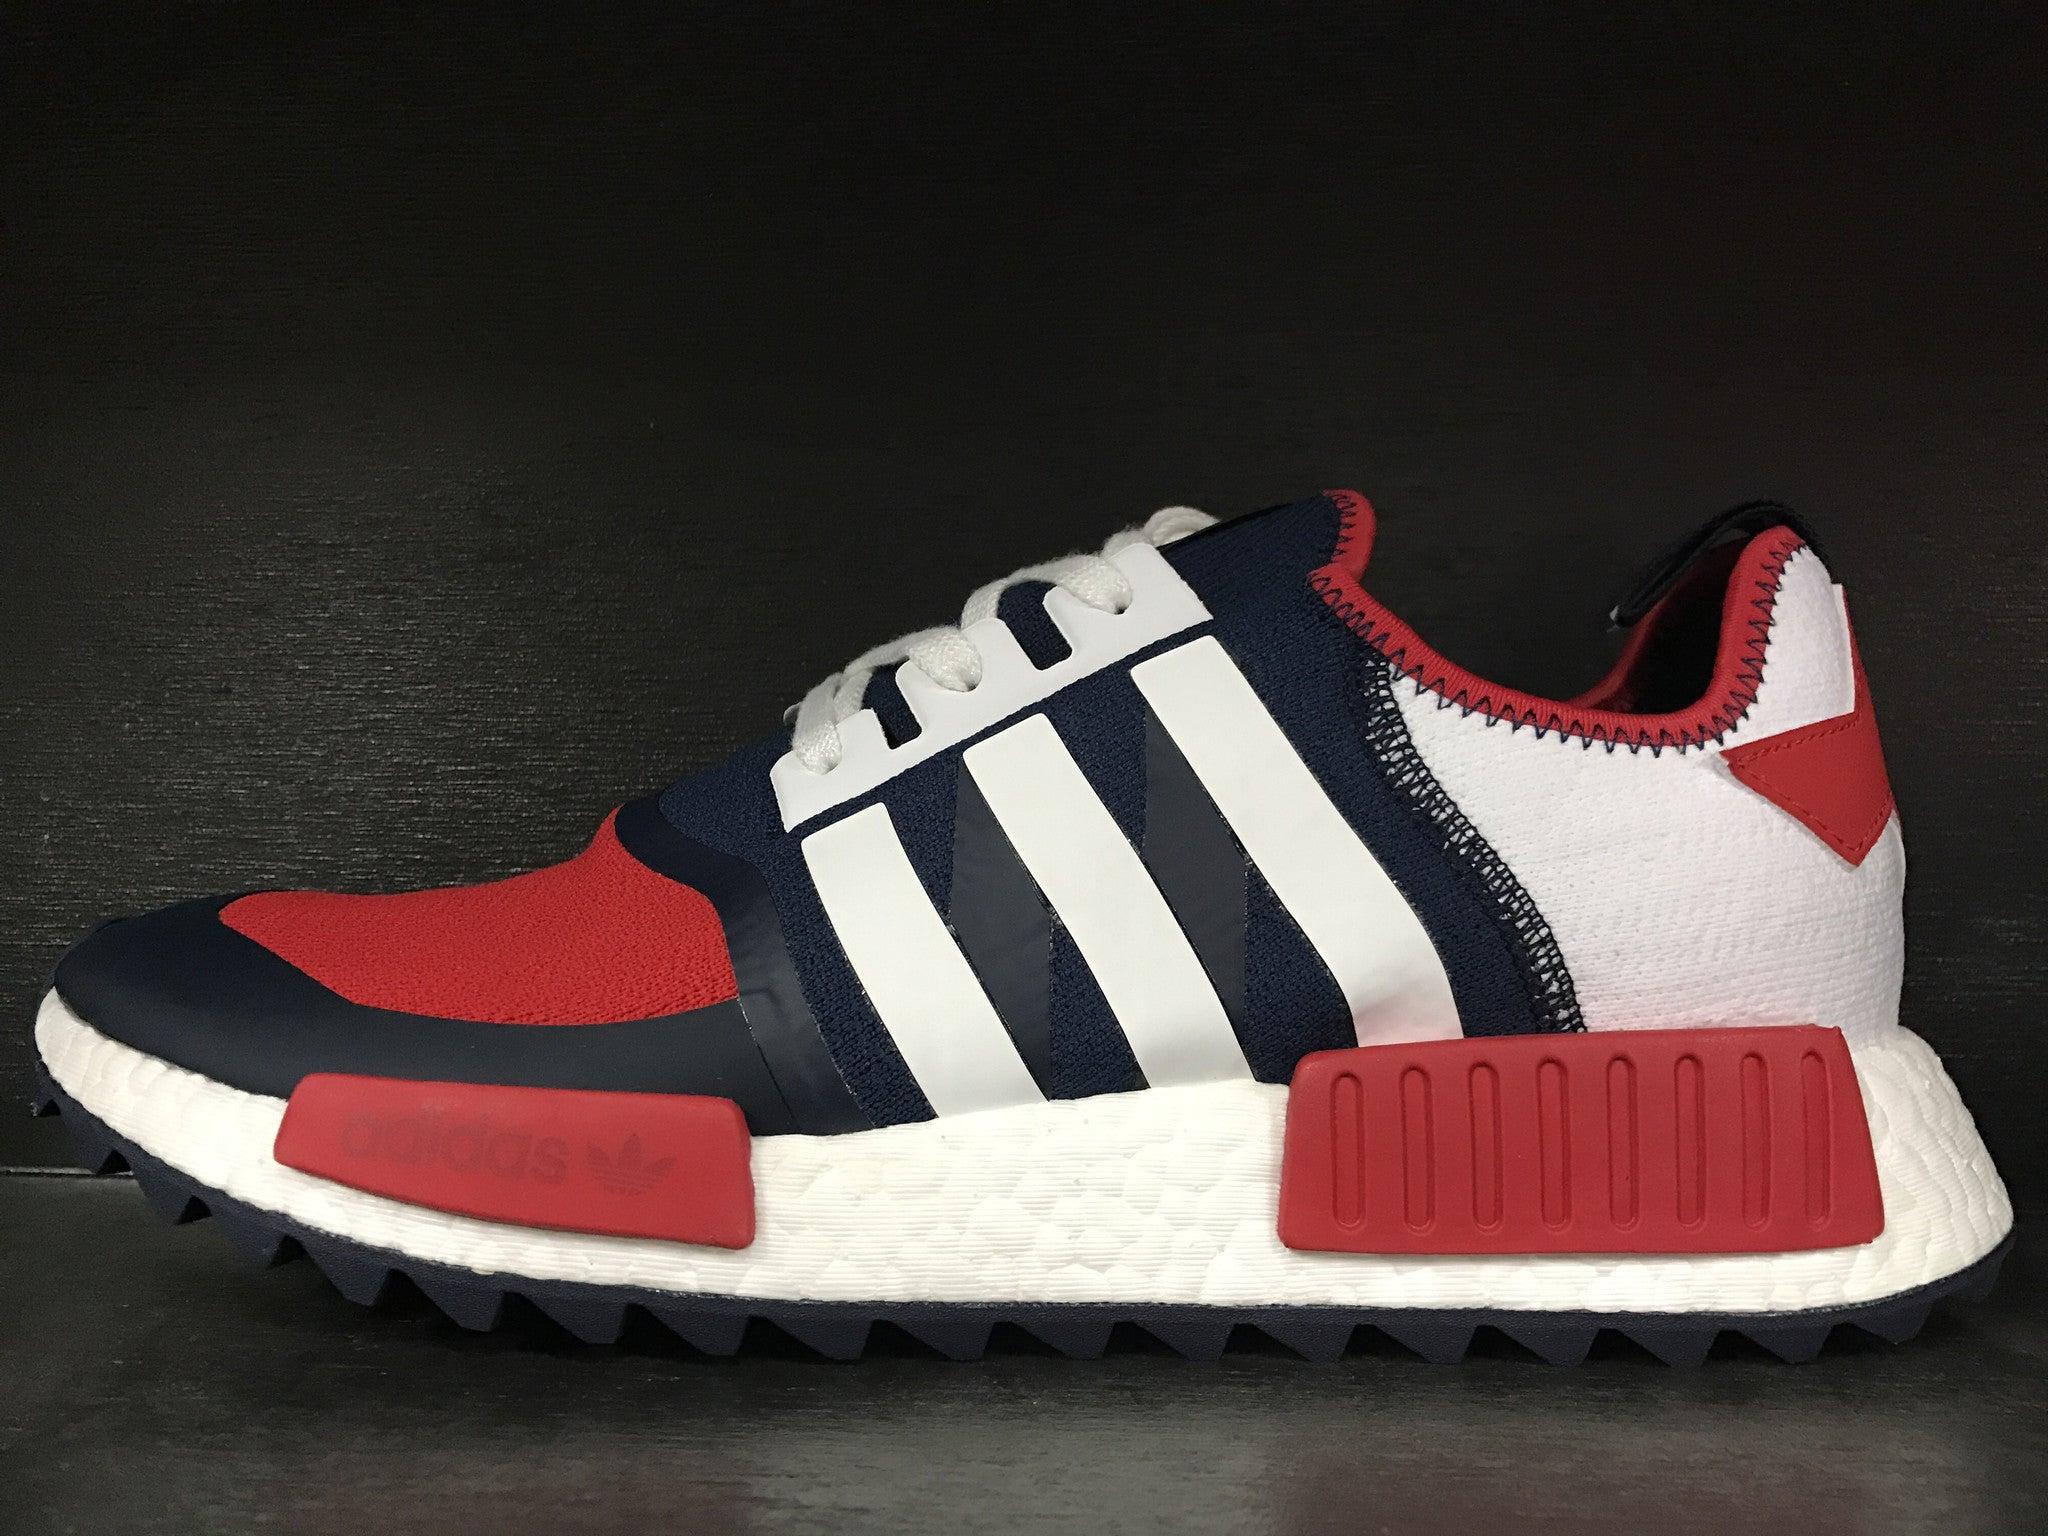 new style 4c7c3 f6483 Adidas NMD R1 Trail 'White Mountaineering Collegiate Navy ...